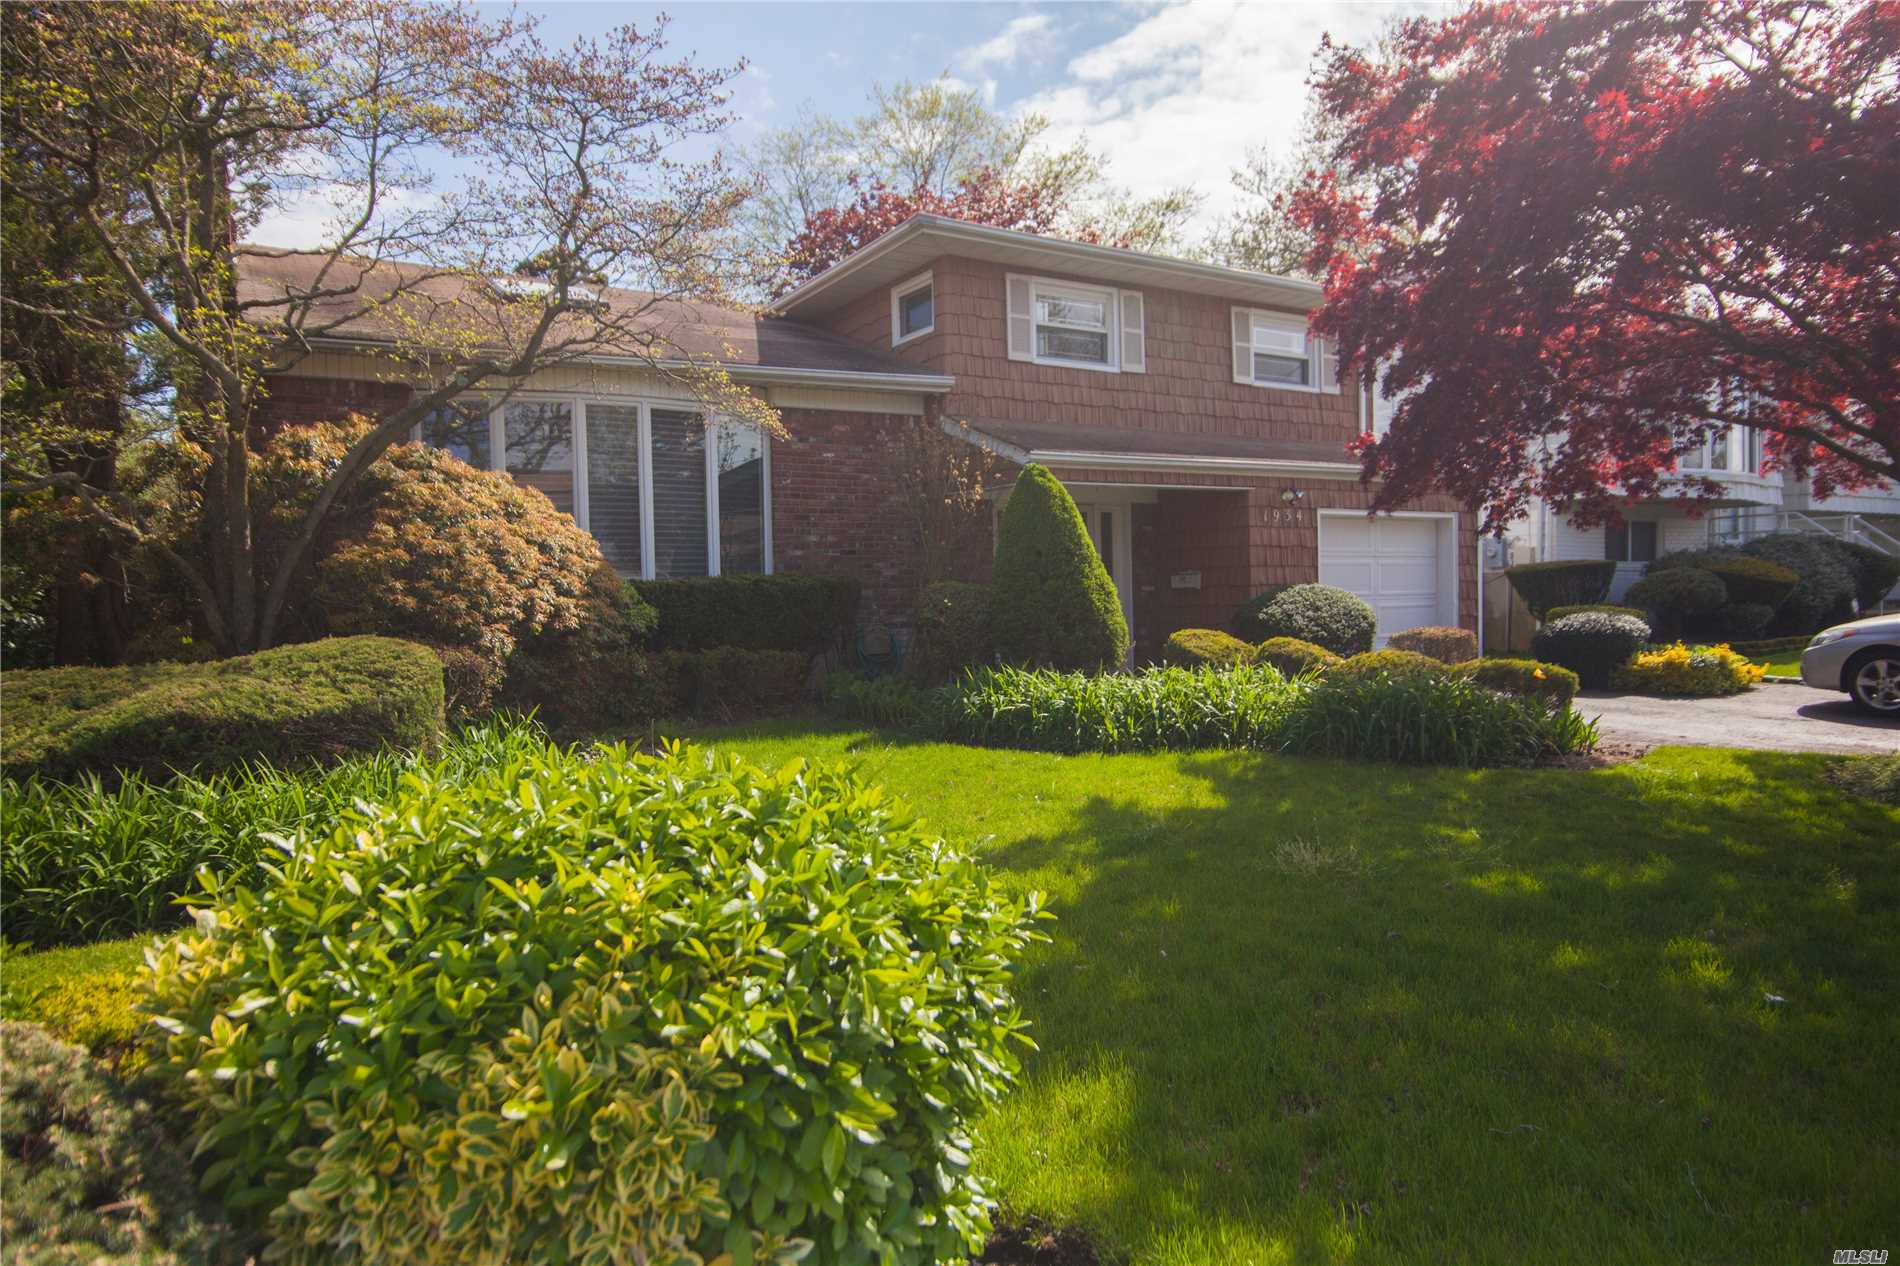 Location, location, location! Move right into this Prime south Merrick split (not in flood zone). Features open concept main level w/ hardwood floors, super bright, CAC, large 4 BR, 3 Bath w/ closets galore! Quiet mid-block, private yard, too much to list! Make this yours for the summer season!